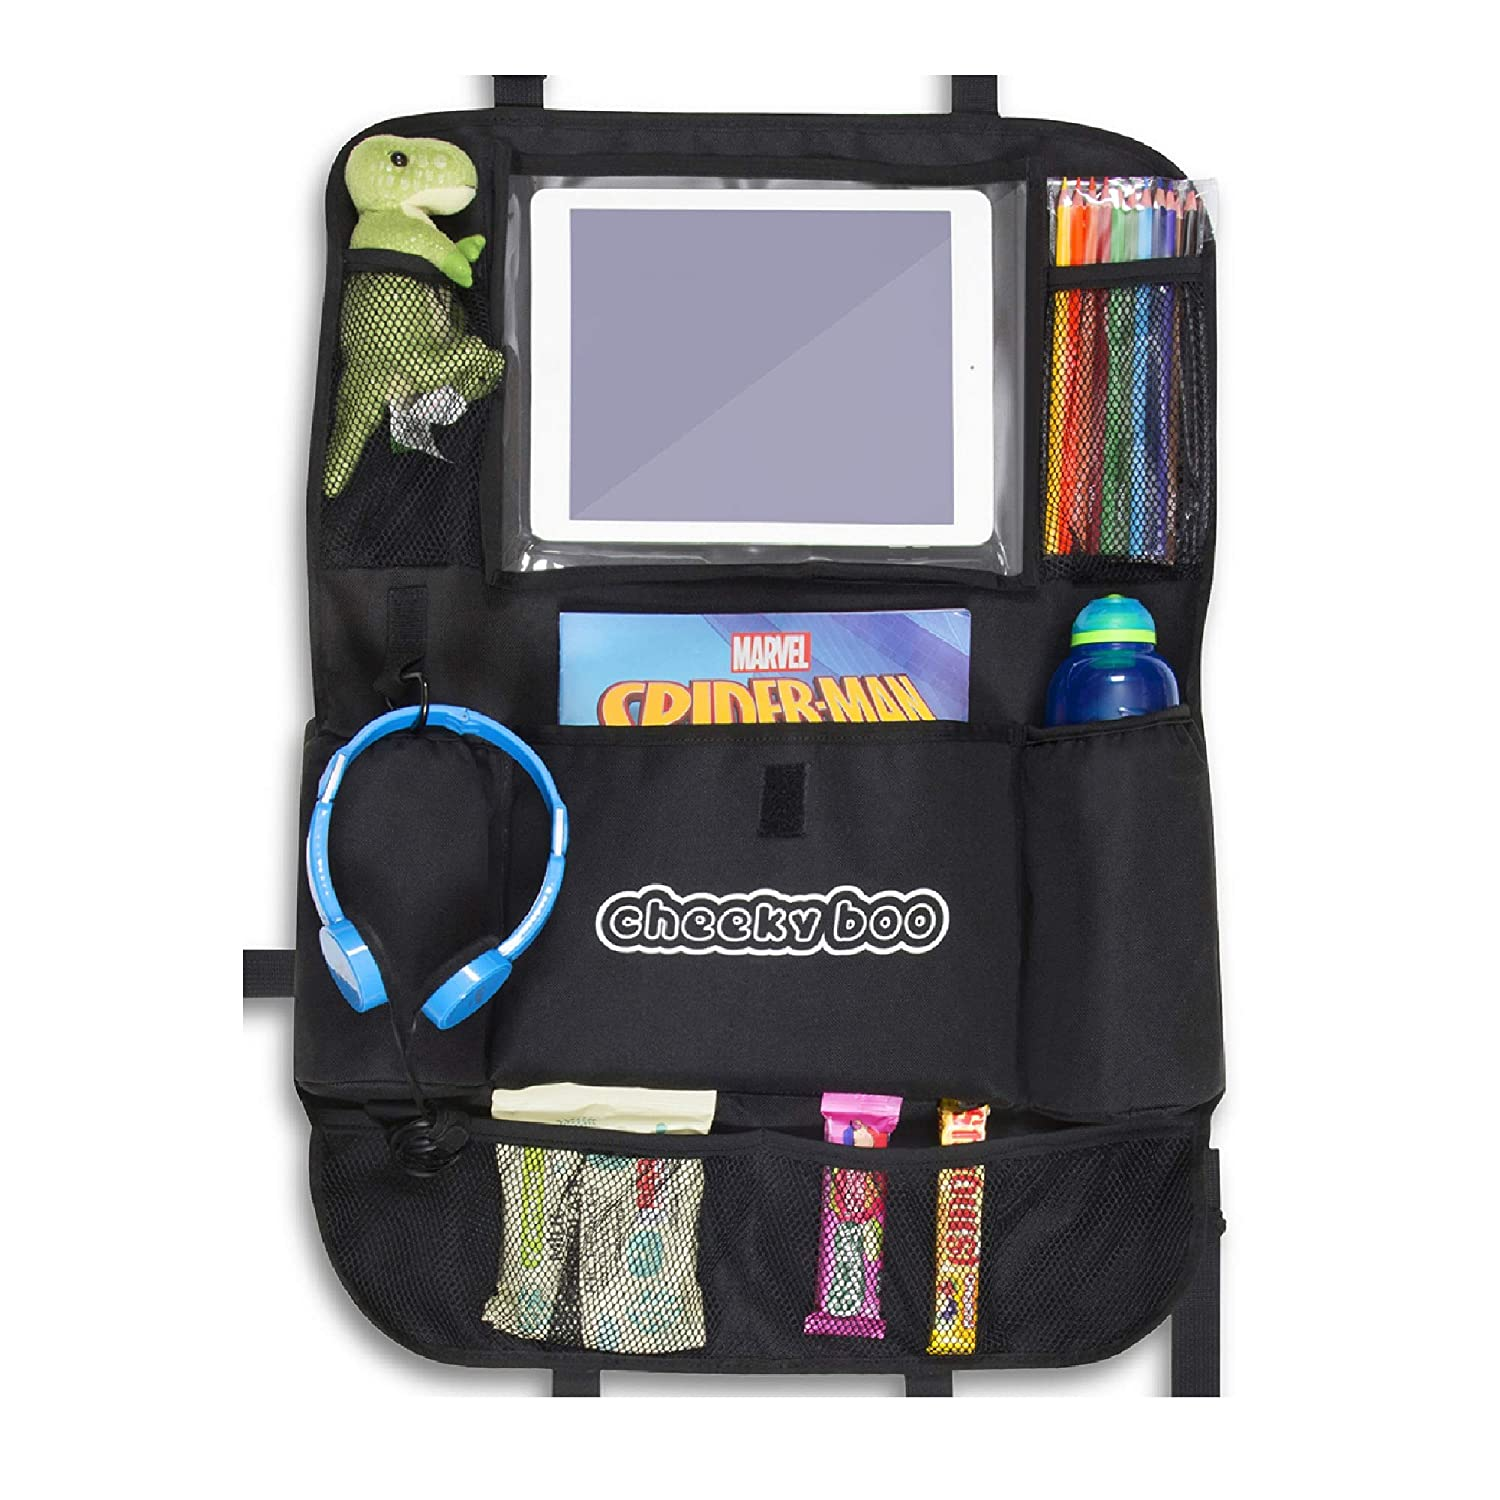 CheekyBoo - Child's Large Car Backseat Organiser with iPad/Tablet Holder for Kids and Toddlers